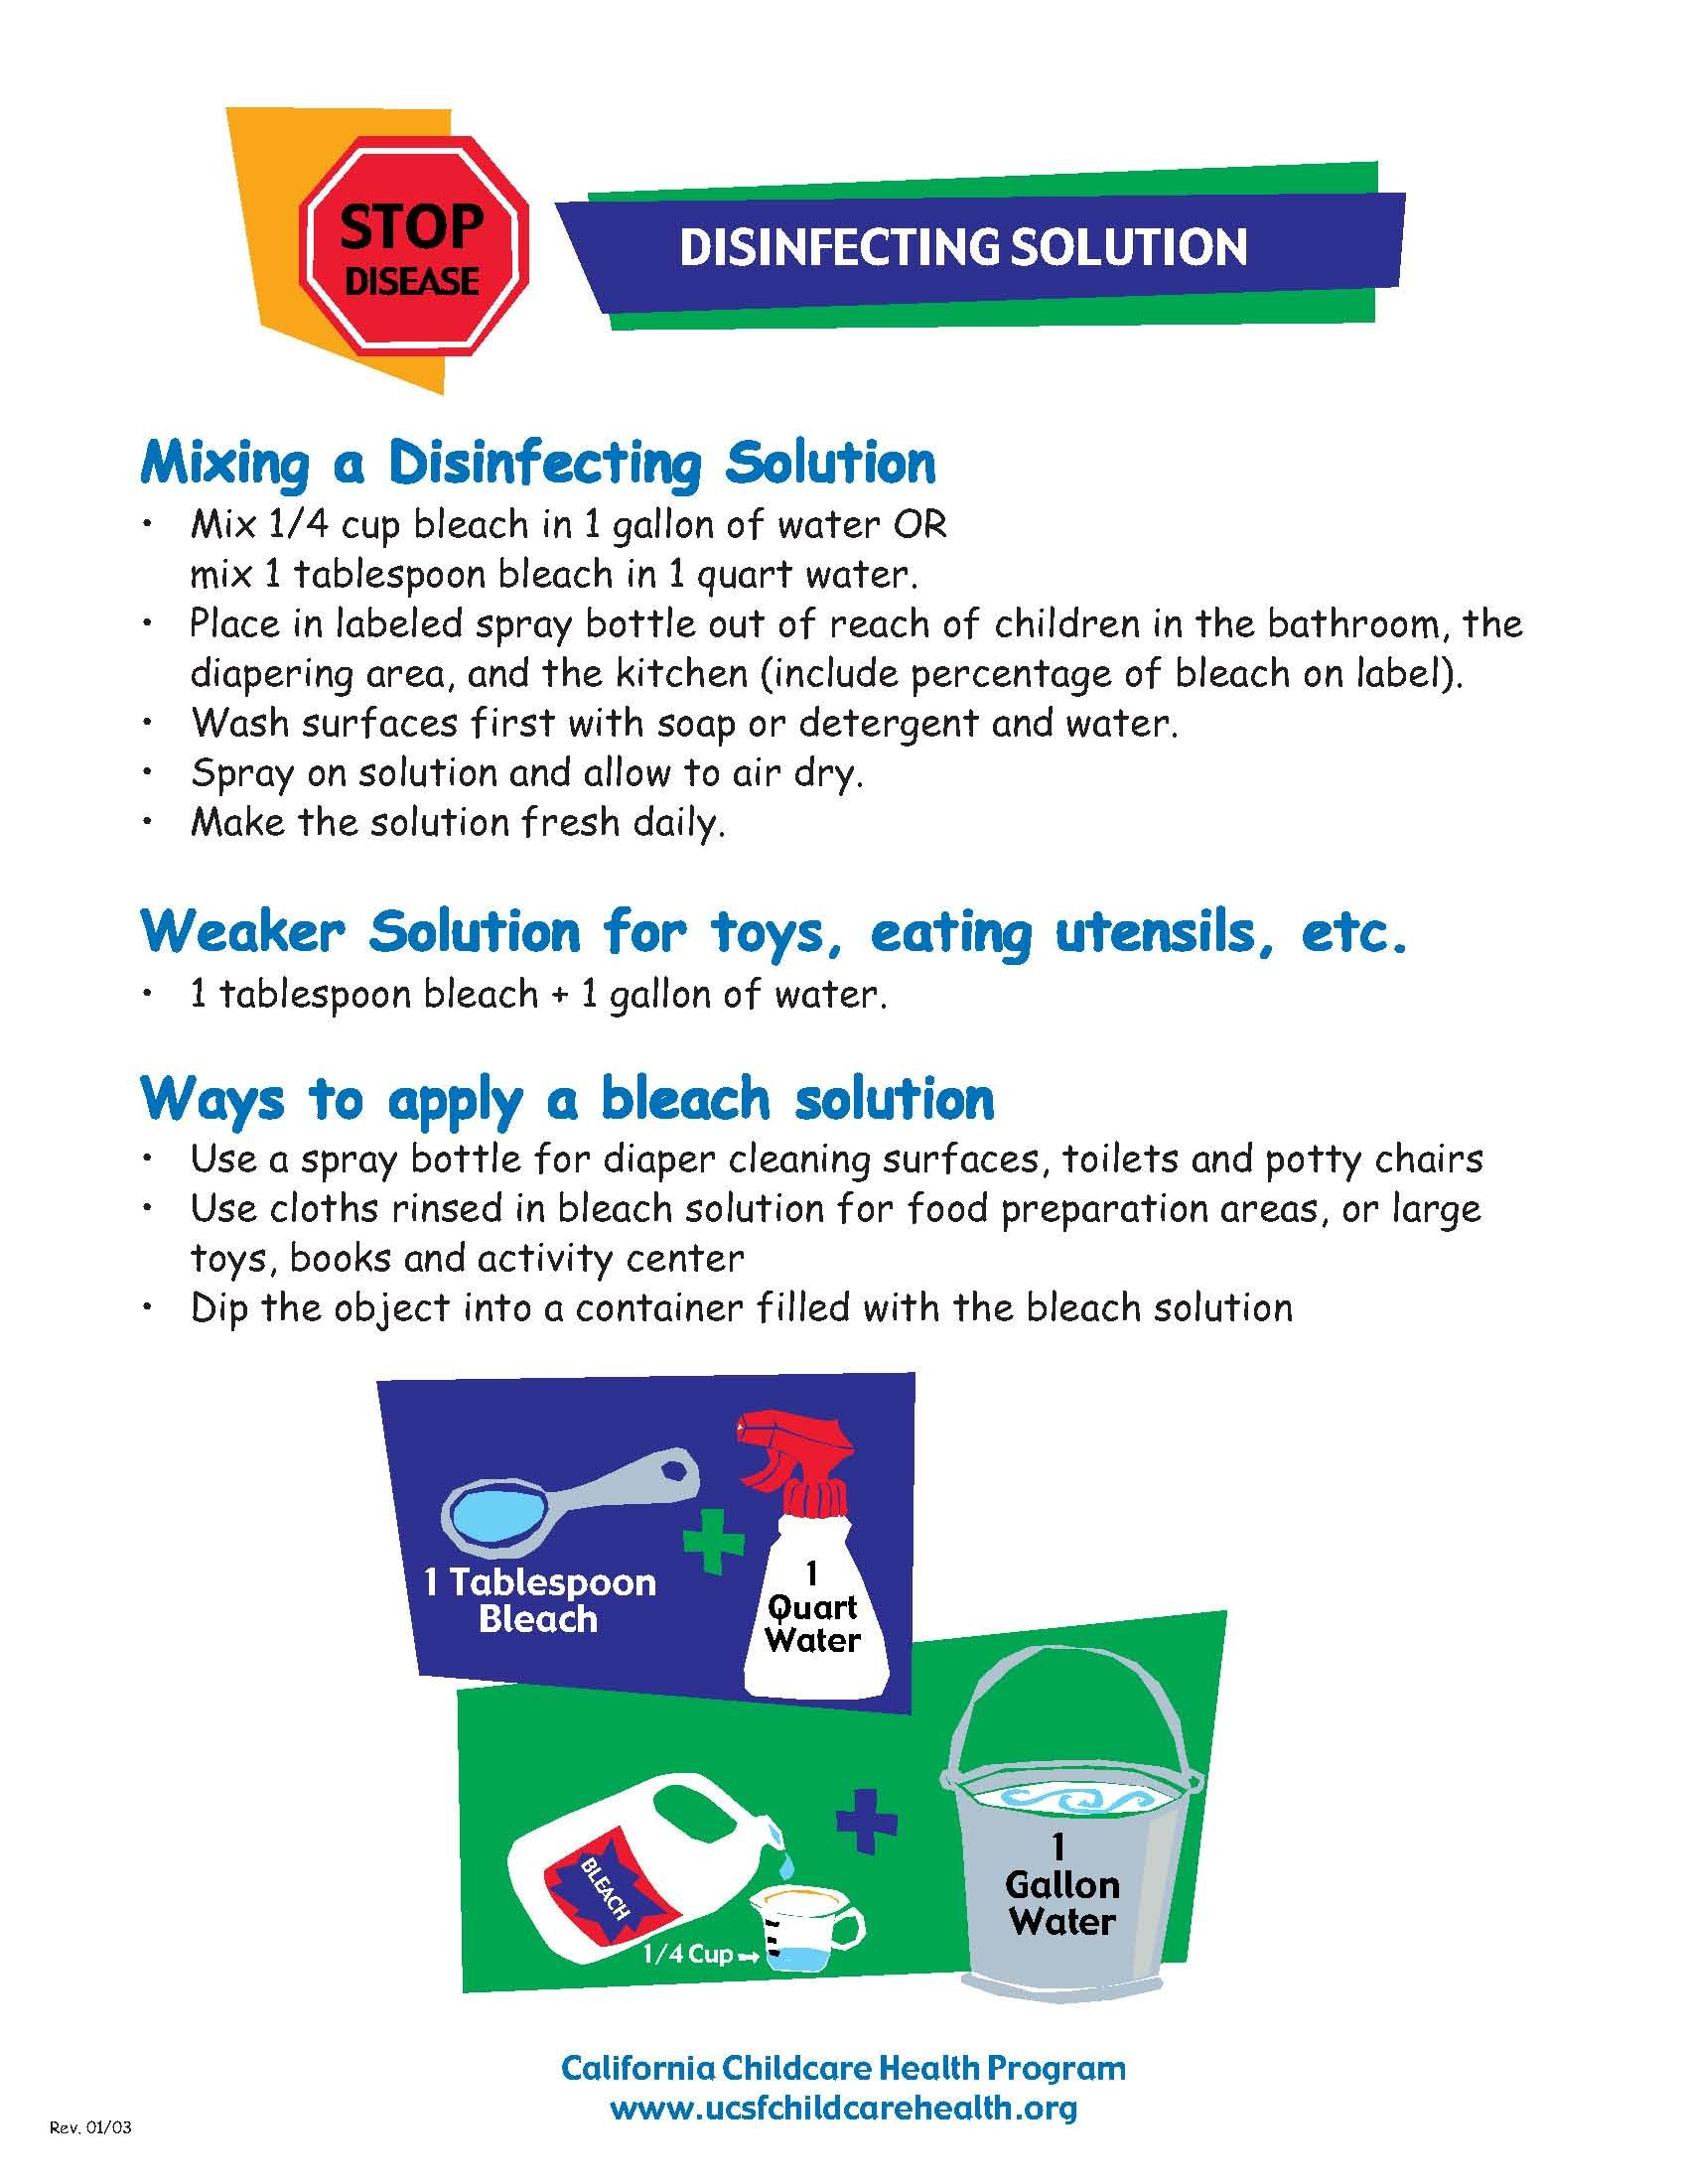 Childcare Disinfection Guide